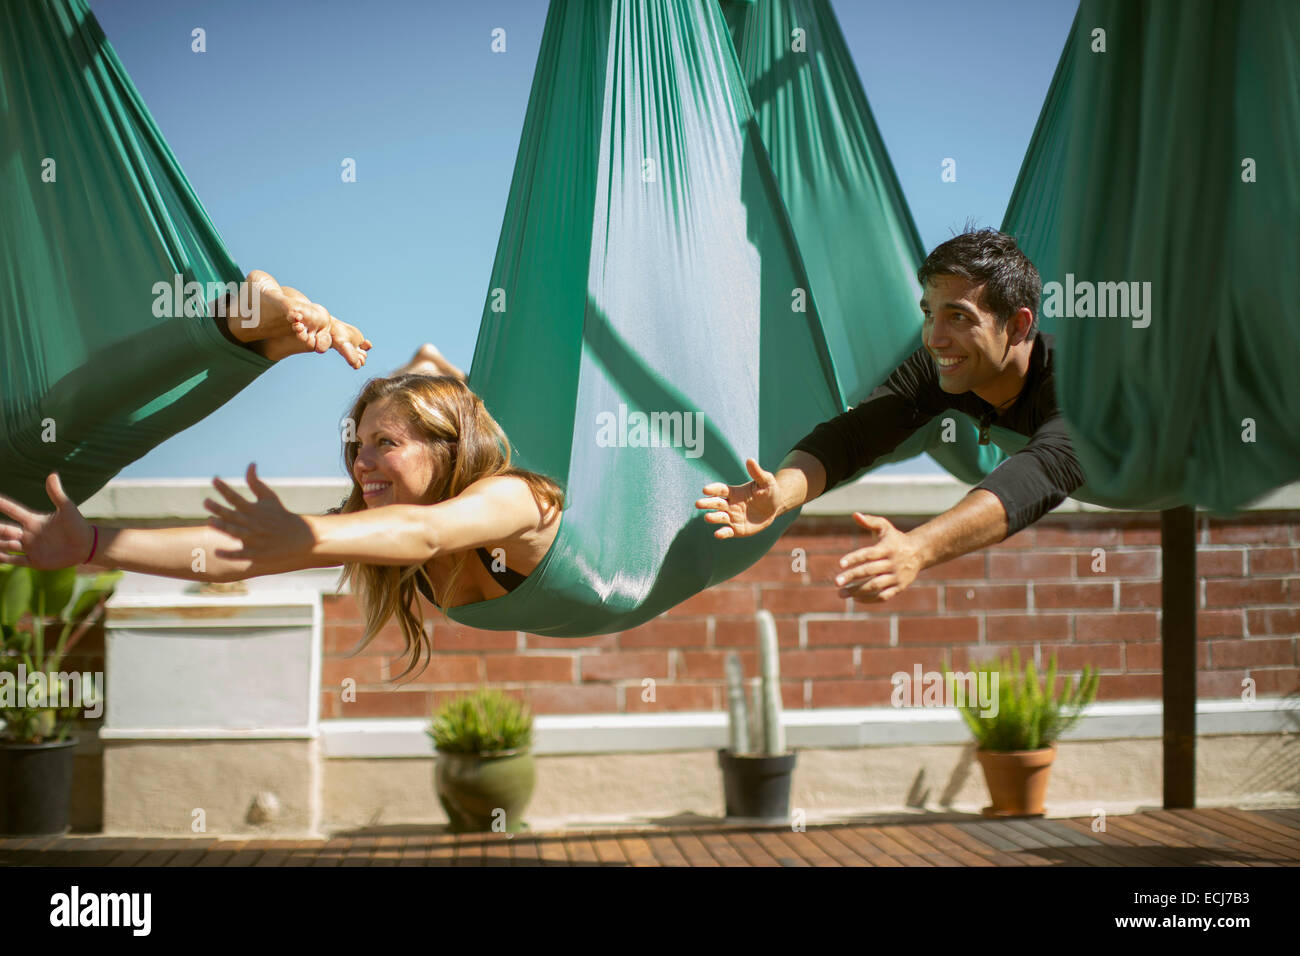 A beautiful girl and a young man perform aerial yoga. - Stock Image